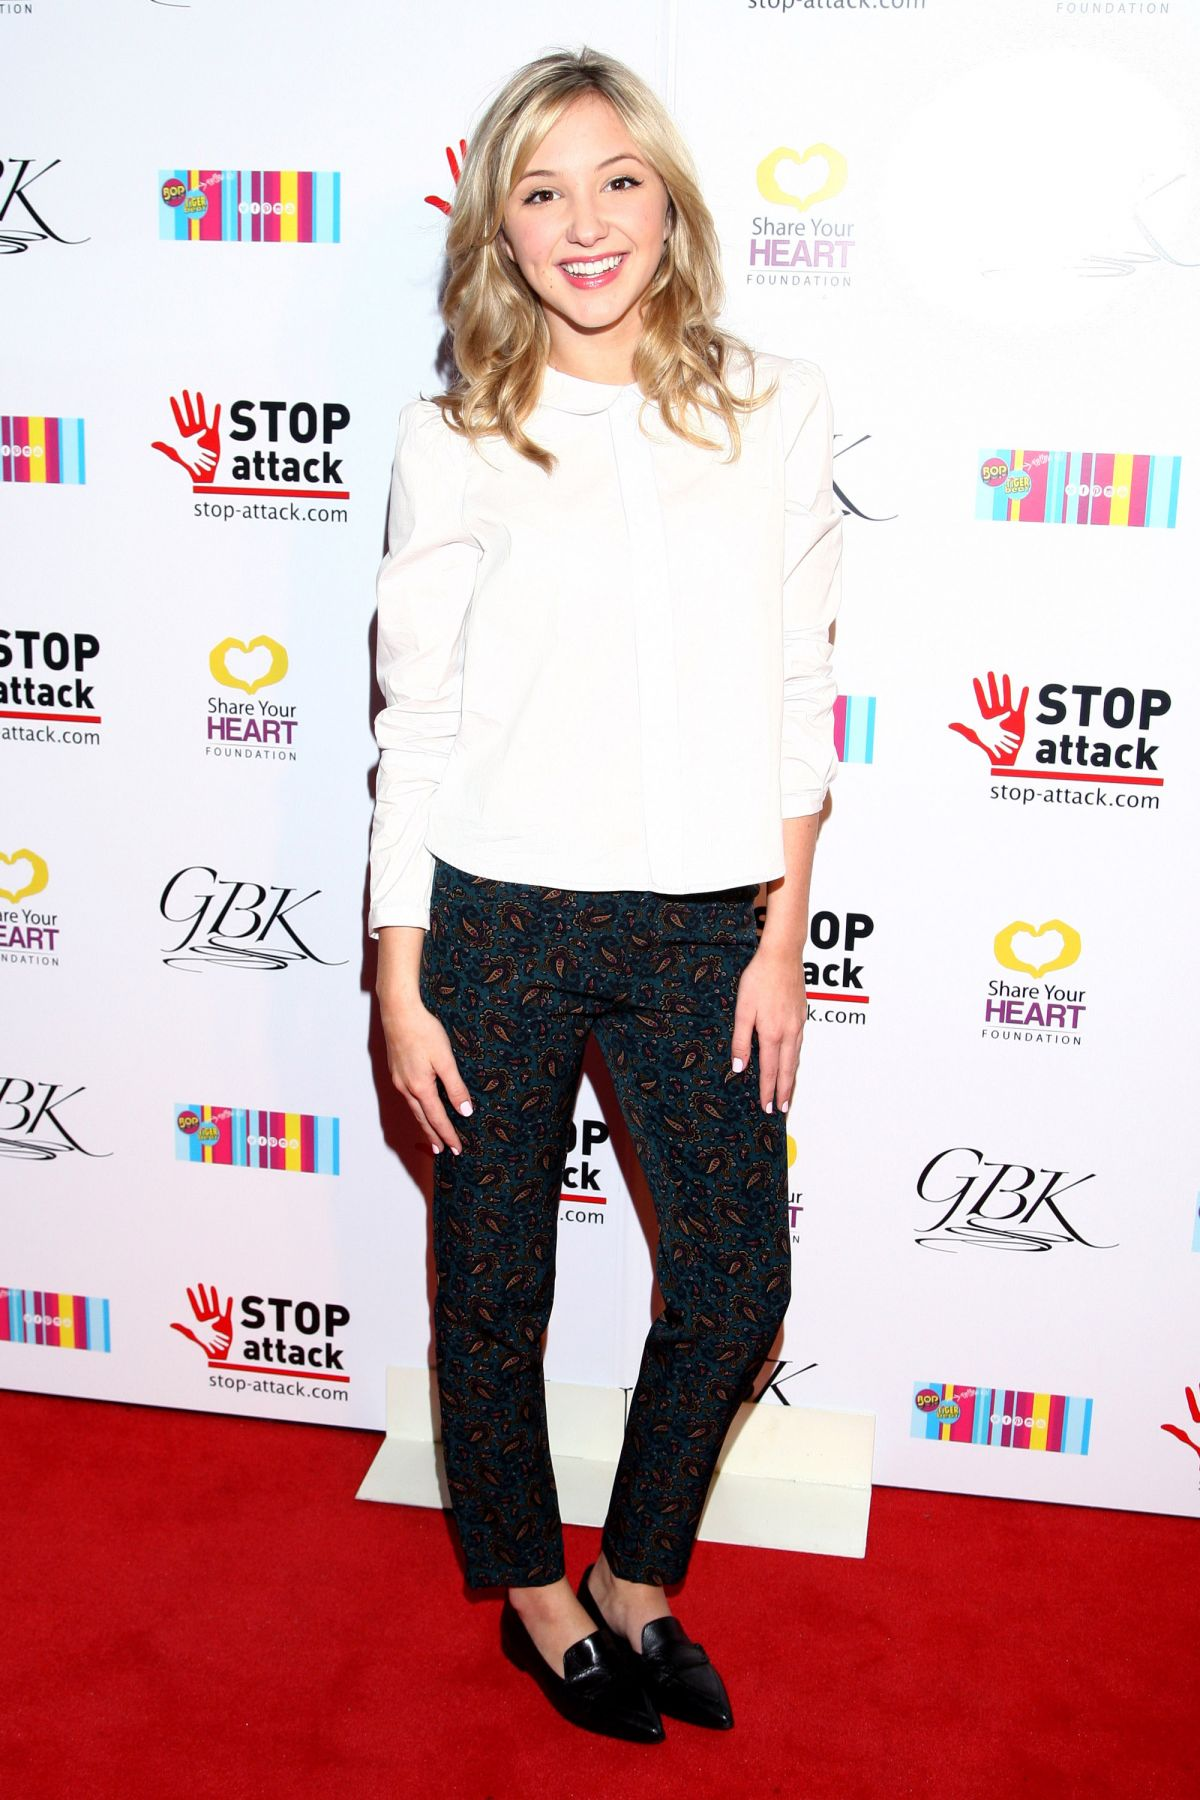 AUDREY WHITBY at GBK & Stop Attack Pre Kids Choice Gift Lounge in Hollywood